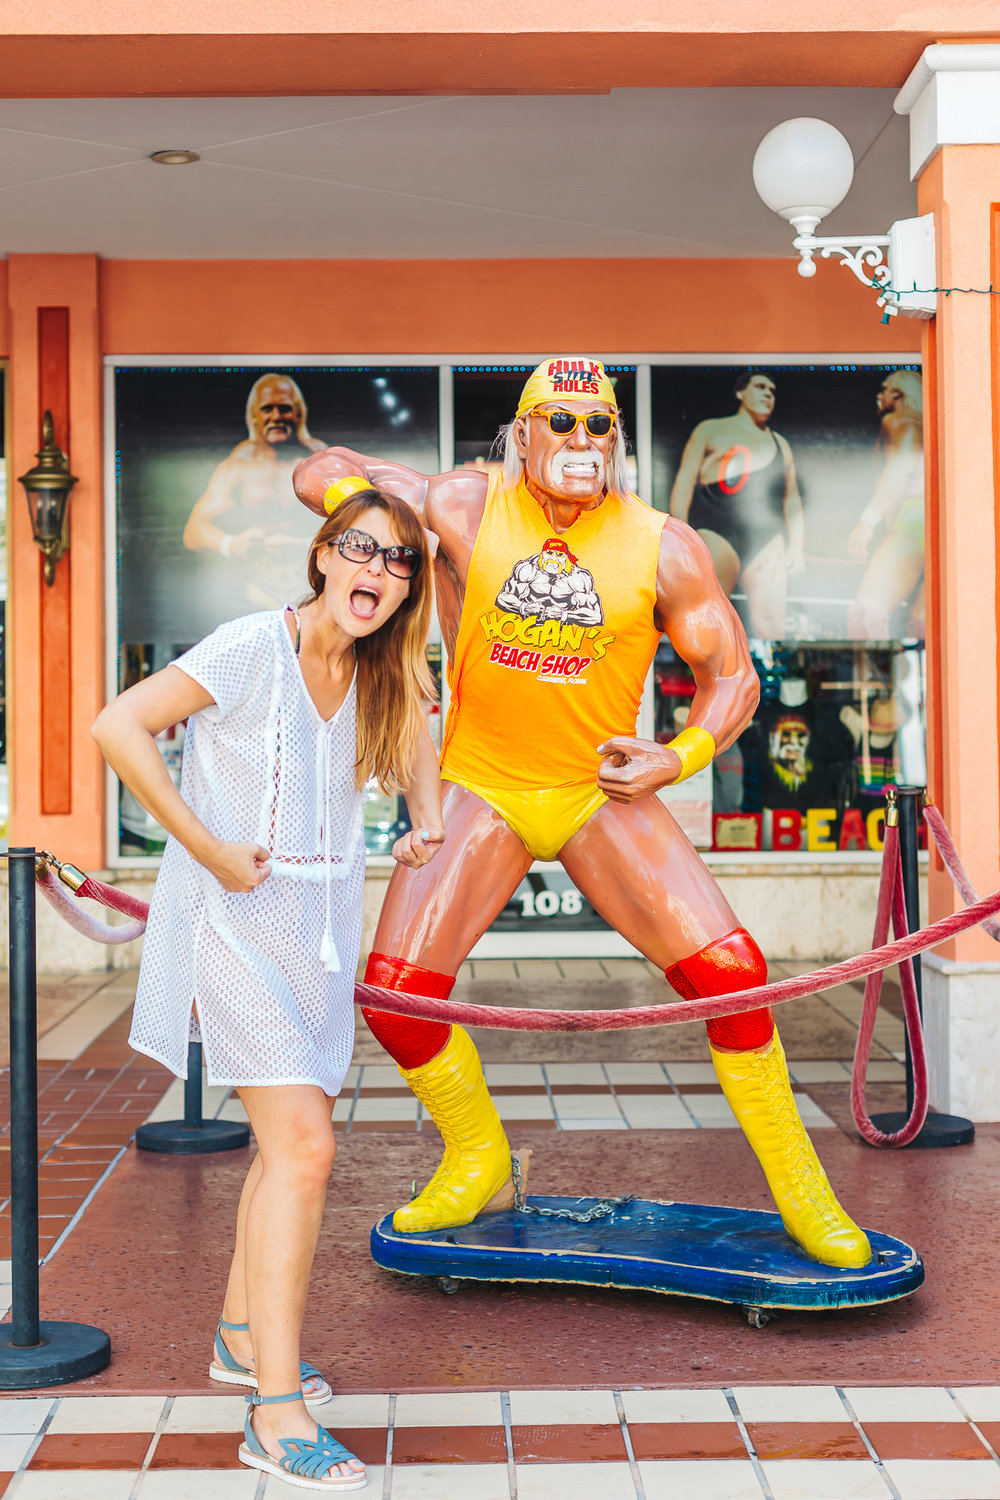 Hulk it out with Hulk Hogan!